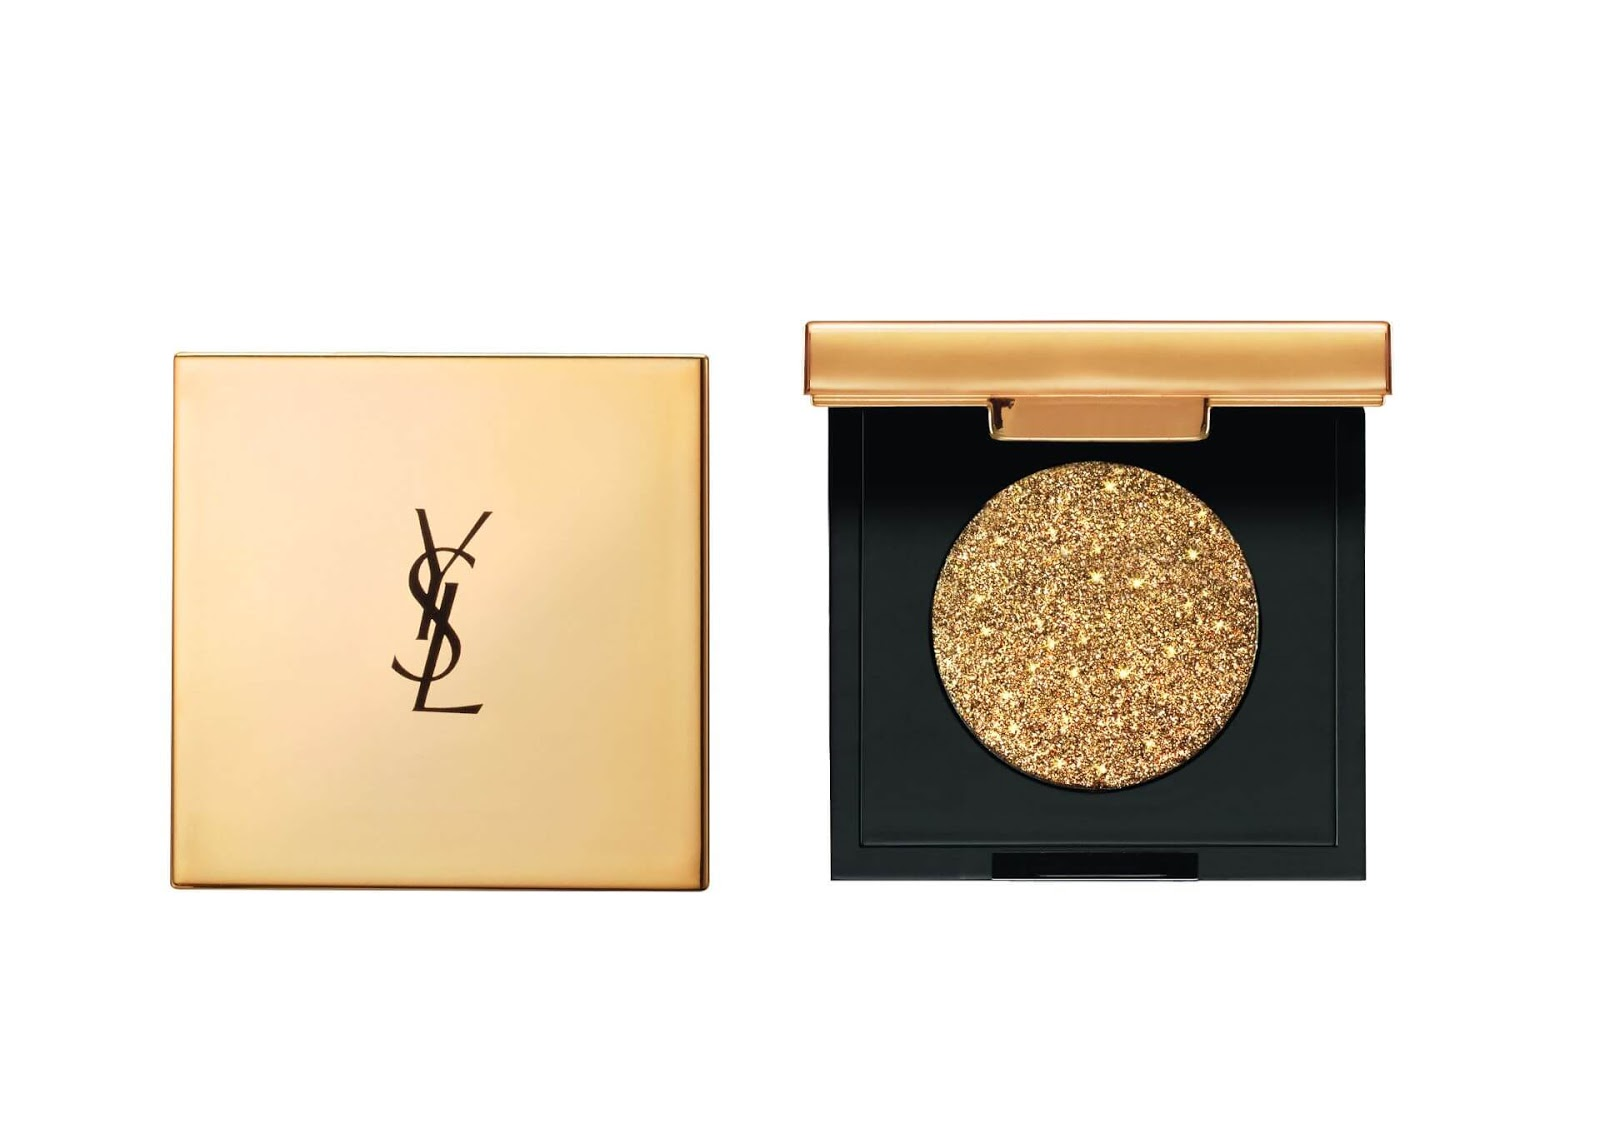 YSL maquillage printemps 2020